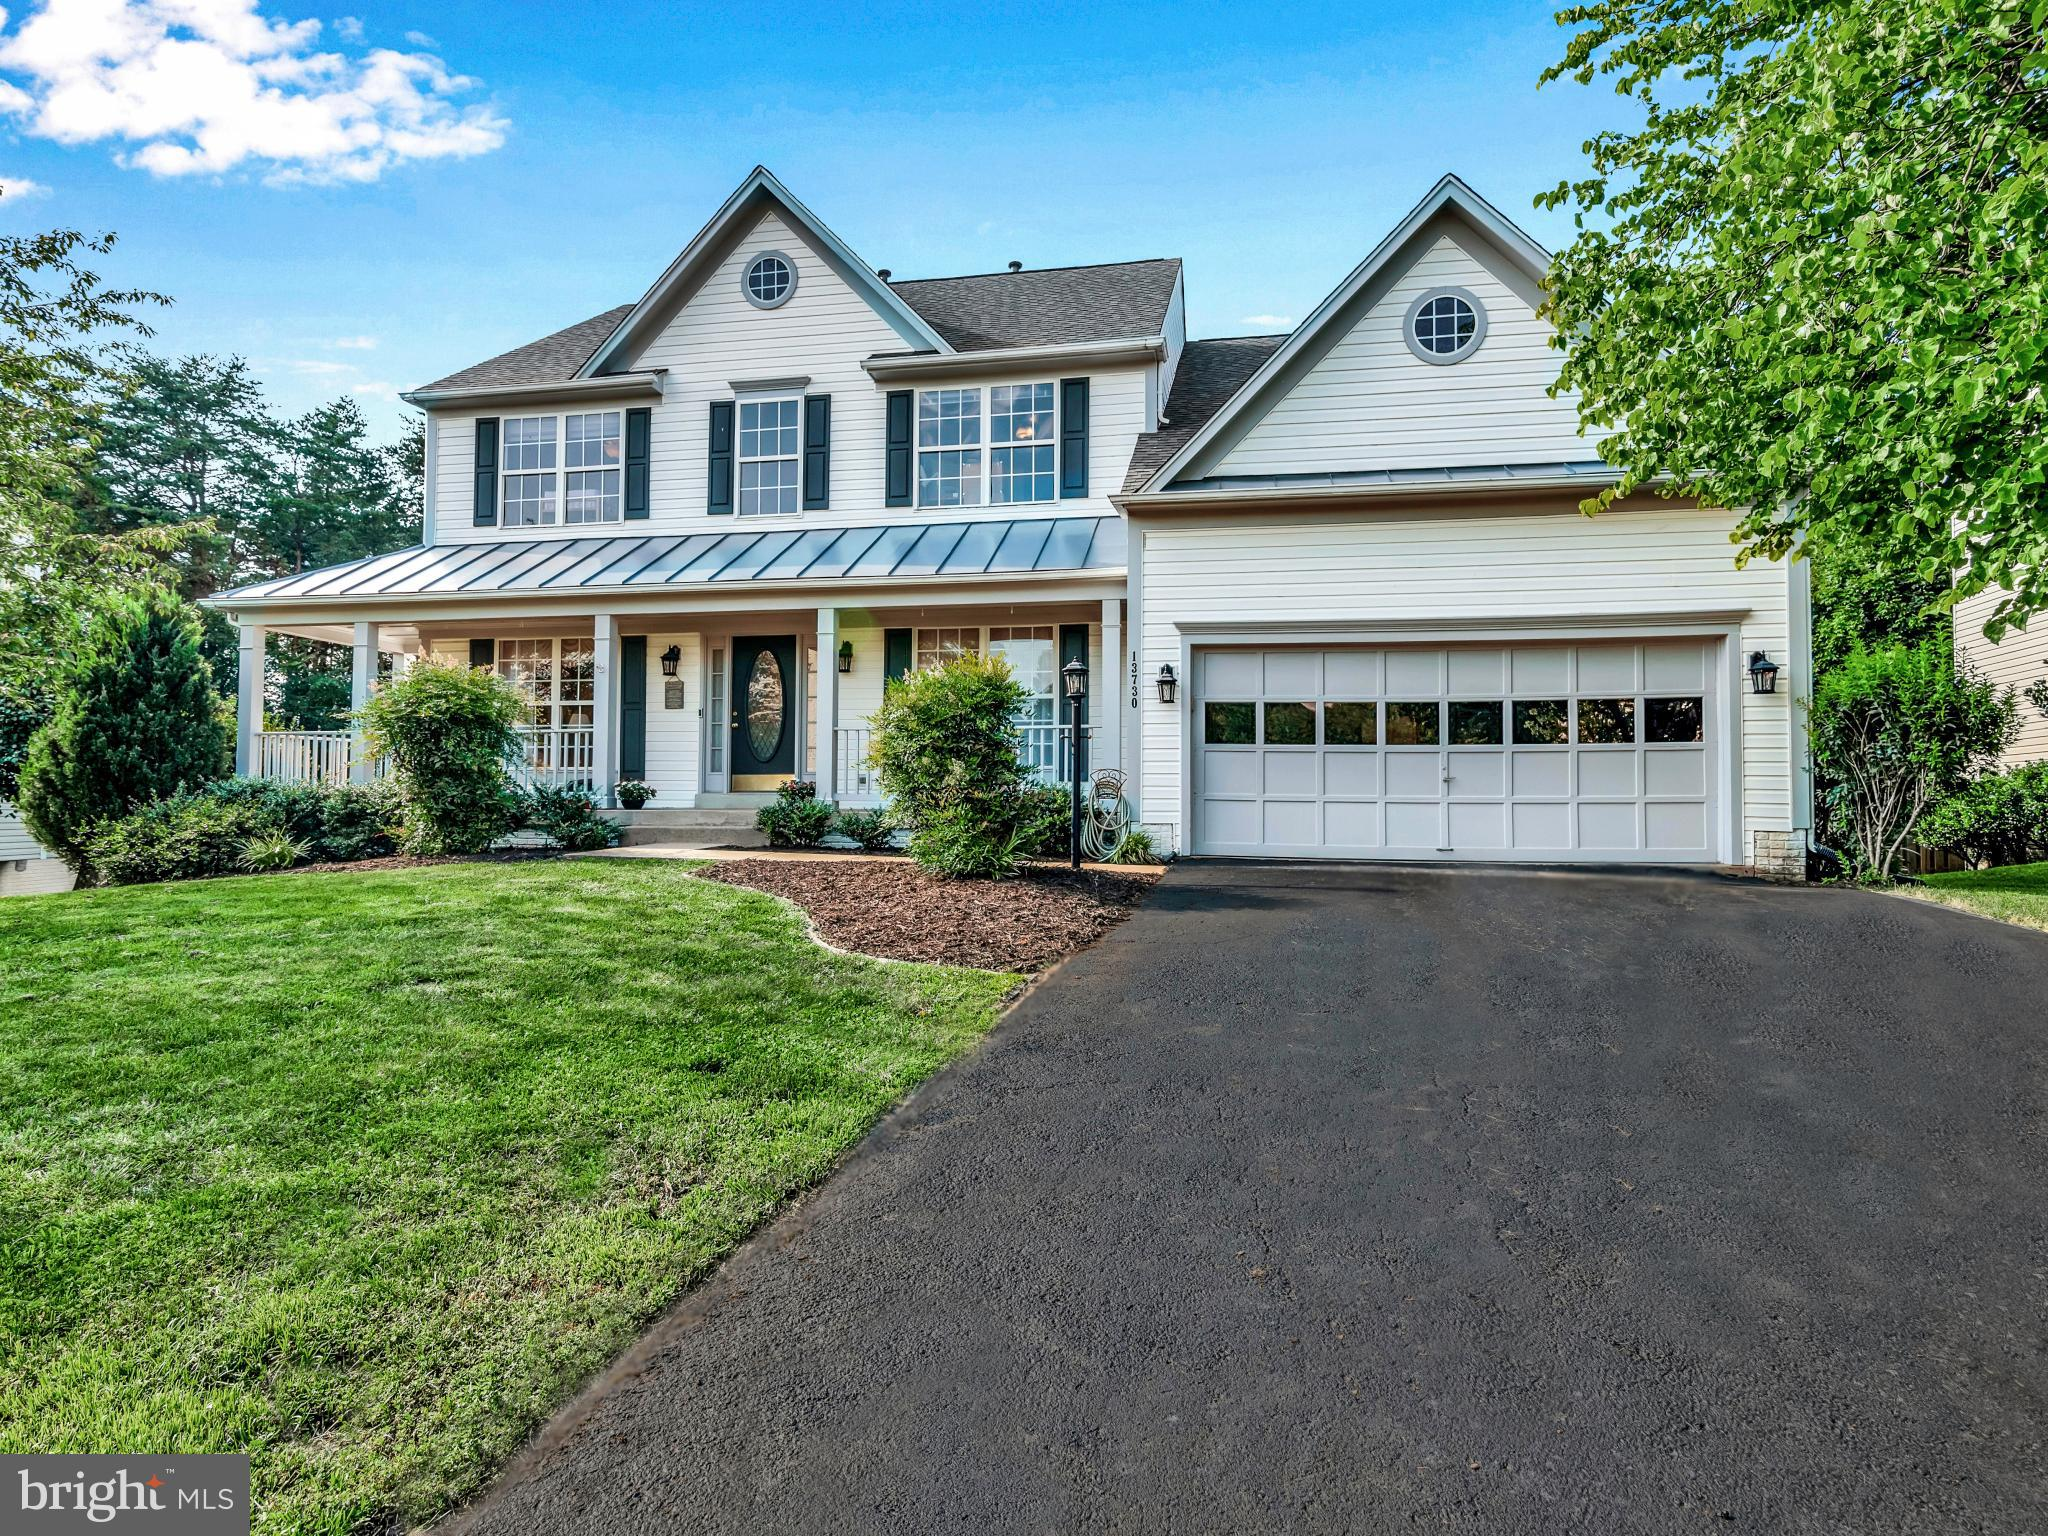 SPACIOUS Dalton Model Colonial in desirable Laurianne Woods offers 4000+ square feet of living space